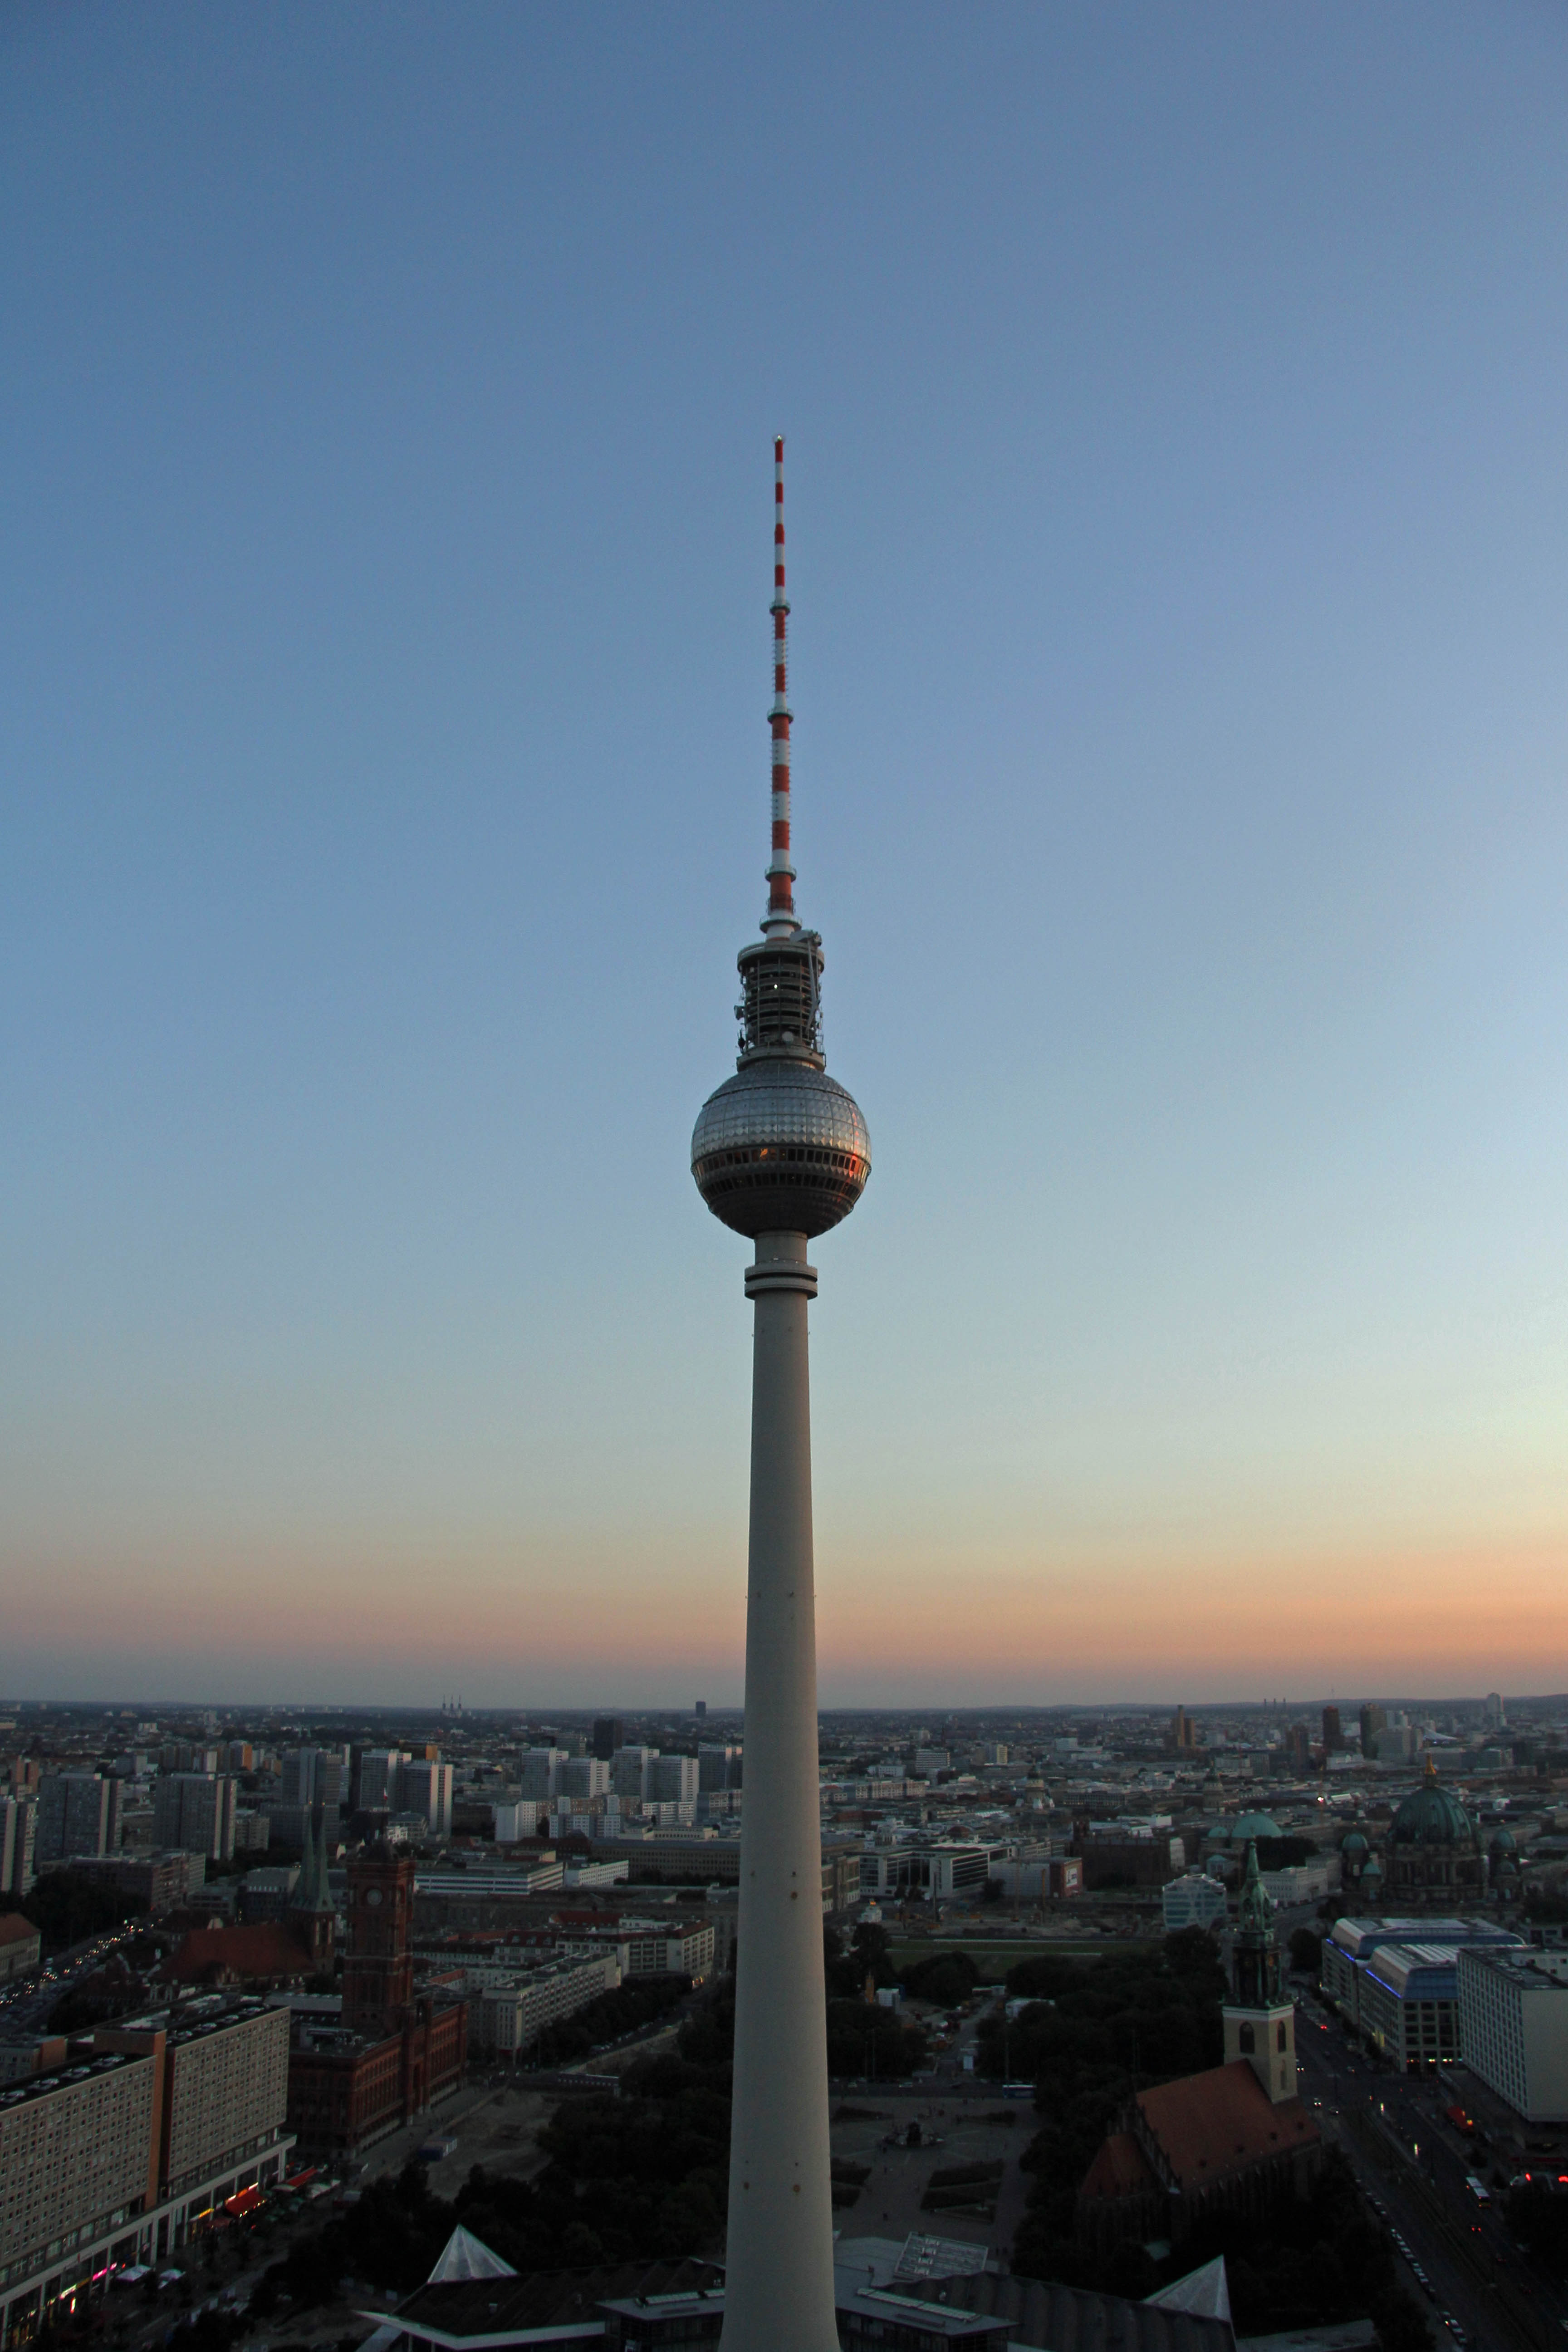 Fernsehturm at dusk: The view from the Sun Terrace of the Park Inn on Alexanderplatz